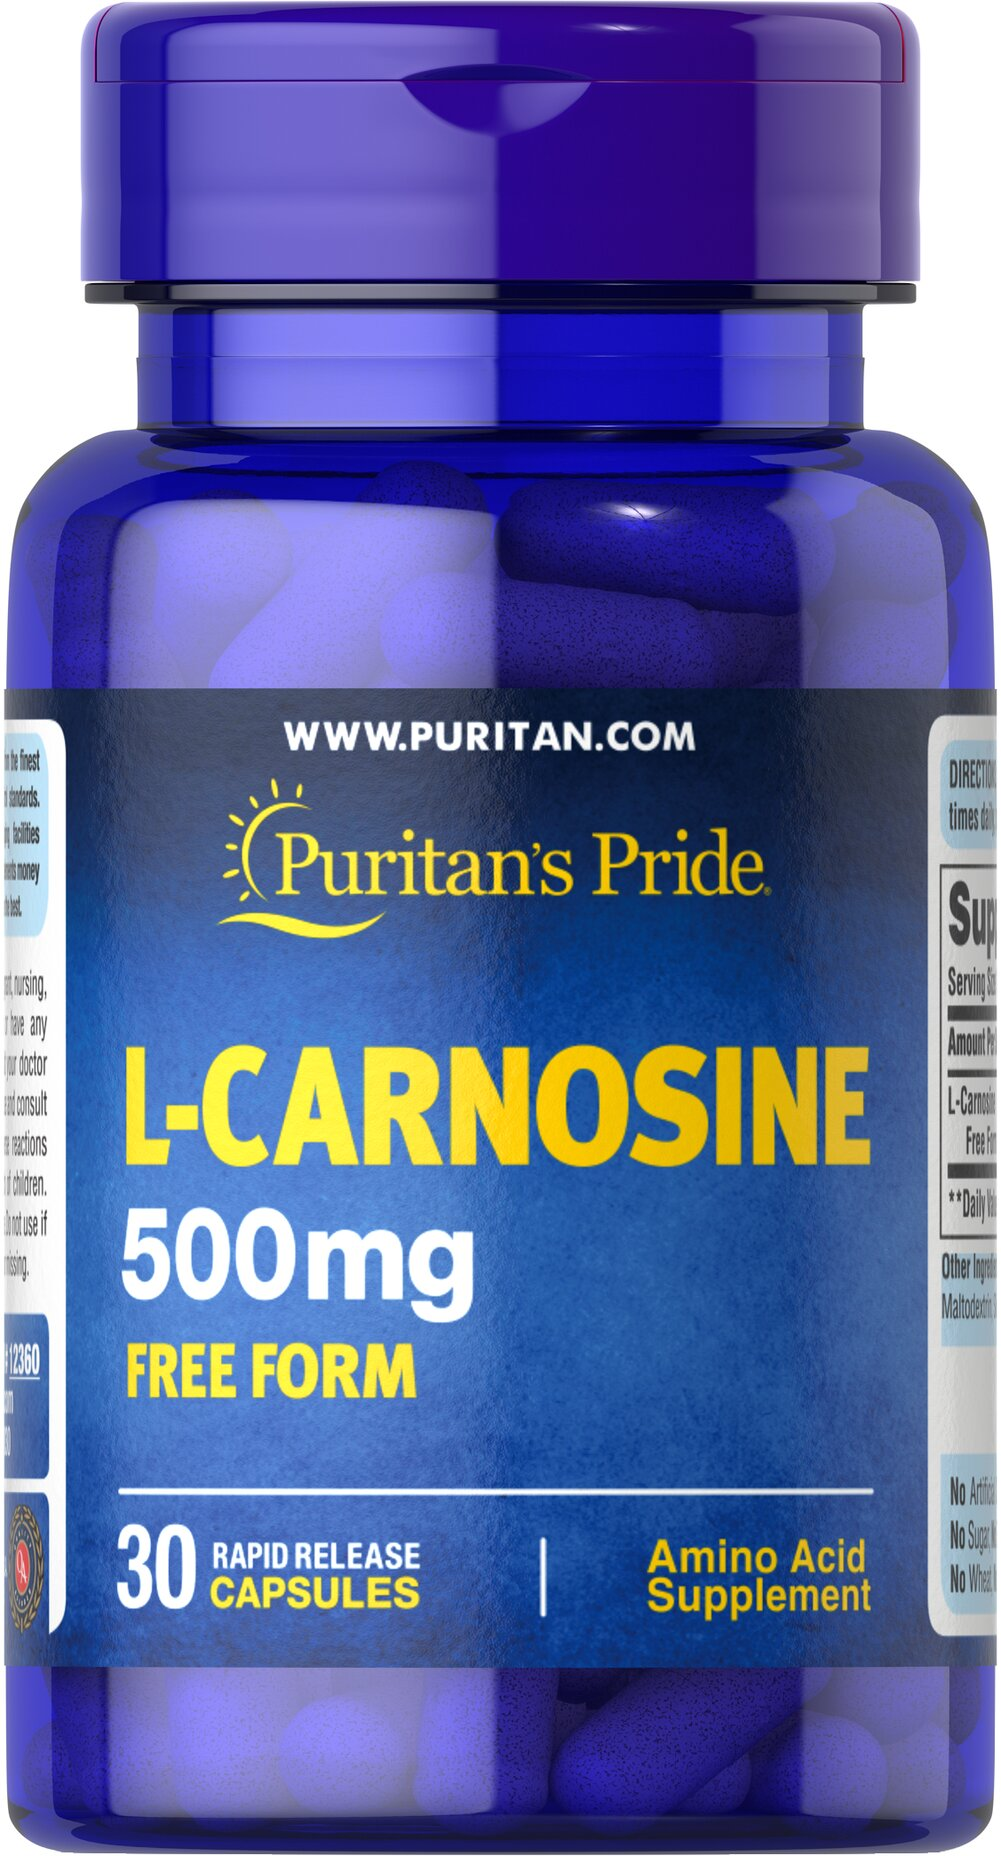 L-Carnosine 500 mg <p>L-Carnosine, one of the most abundant water-soluble nitrogen compounds found in muscle, supports cognitive and nervous system health.** Carnosine can have a positive effect on the brain's learning process.** In addition, L-Carnosine is also involved in the chelation of some heavy metals.**</p><p>Supports Cognitive Health**</p> 30 Capsules 500 mg $22.99